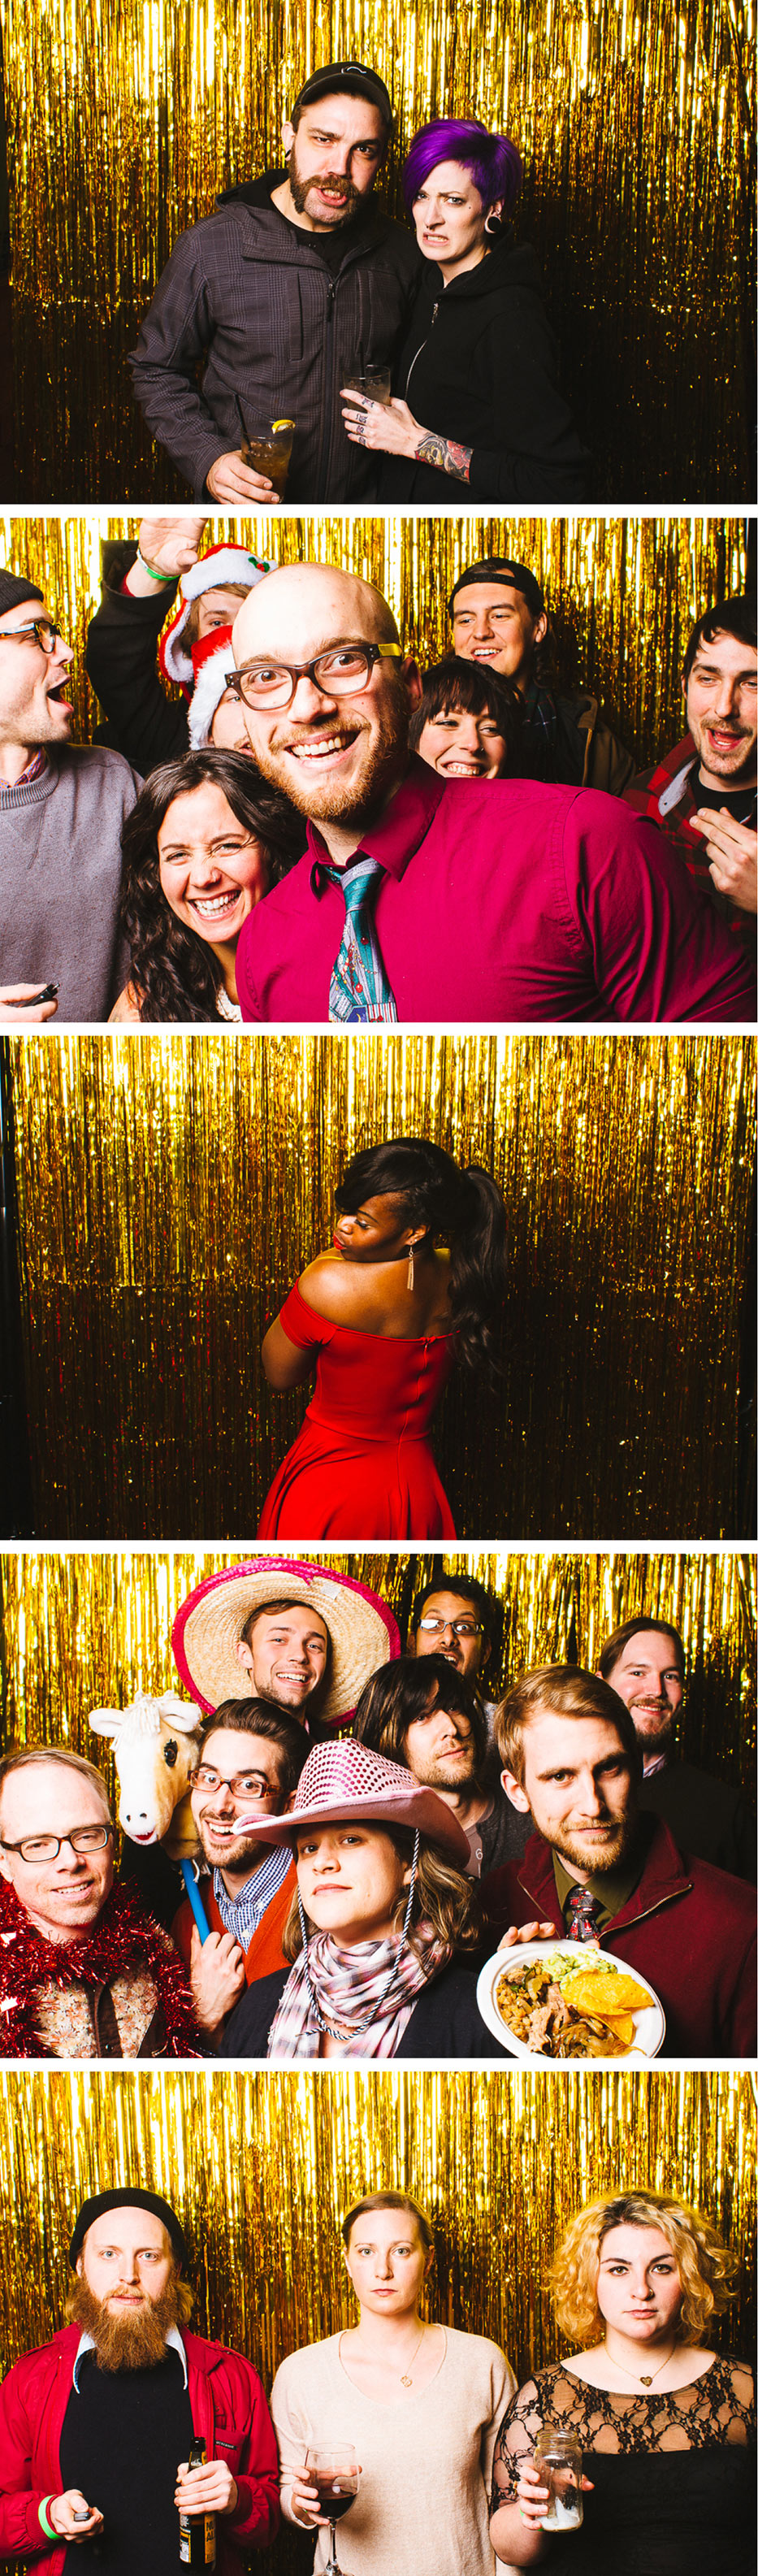 CK-Photo-Nashville-Photobooth-B3.jpg